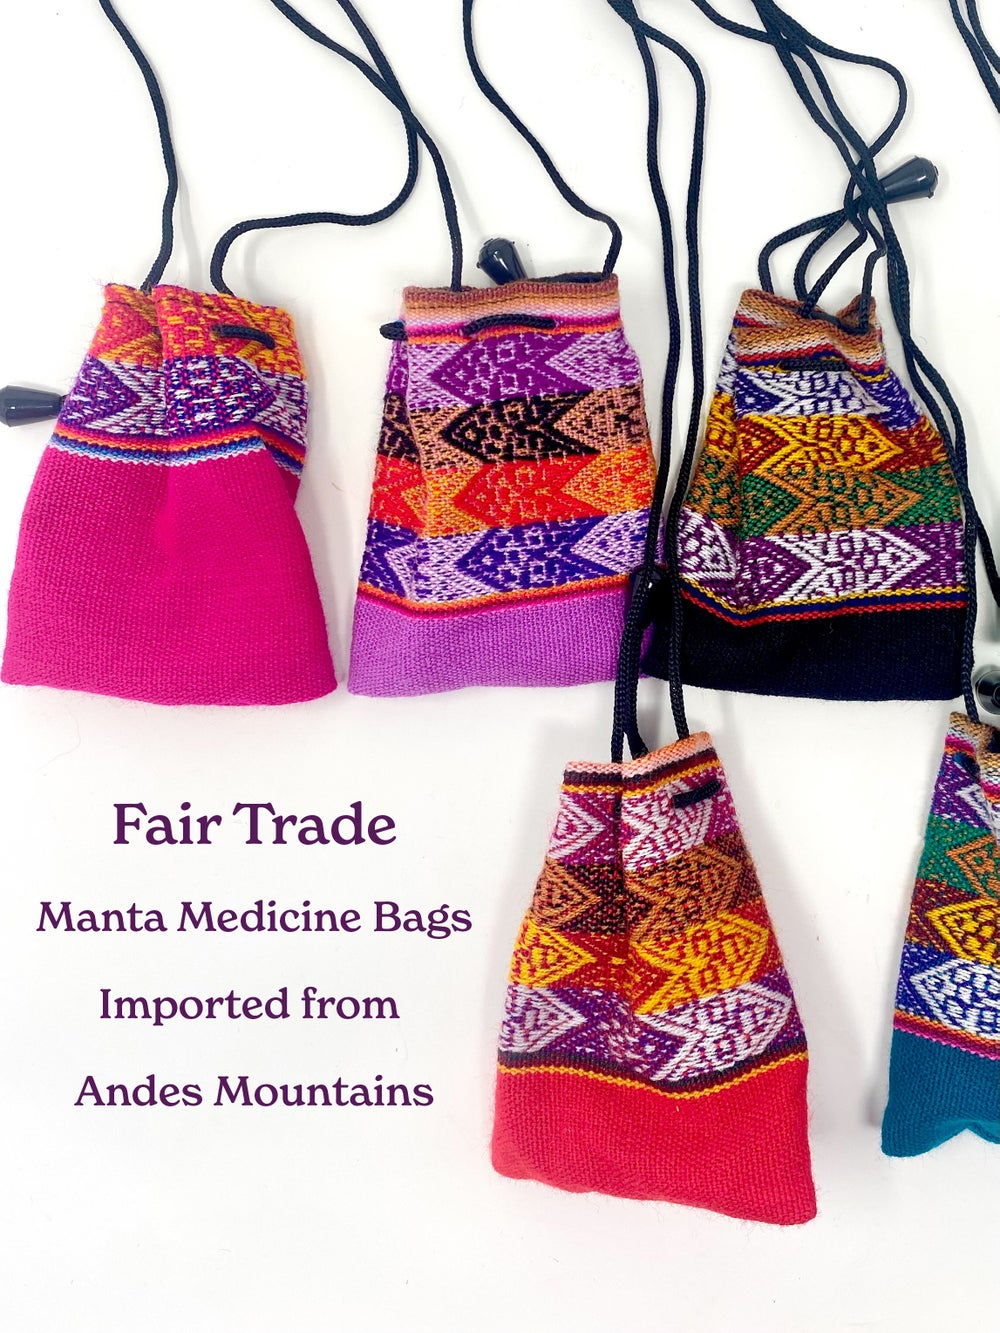 Image of Fair Trade Manta Medicine Bags | Sacred bags for crystals, herbs, coins